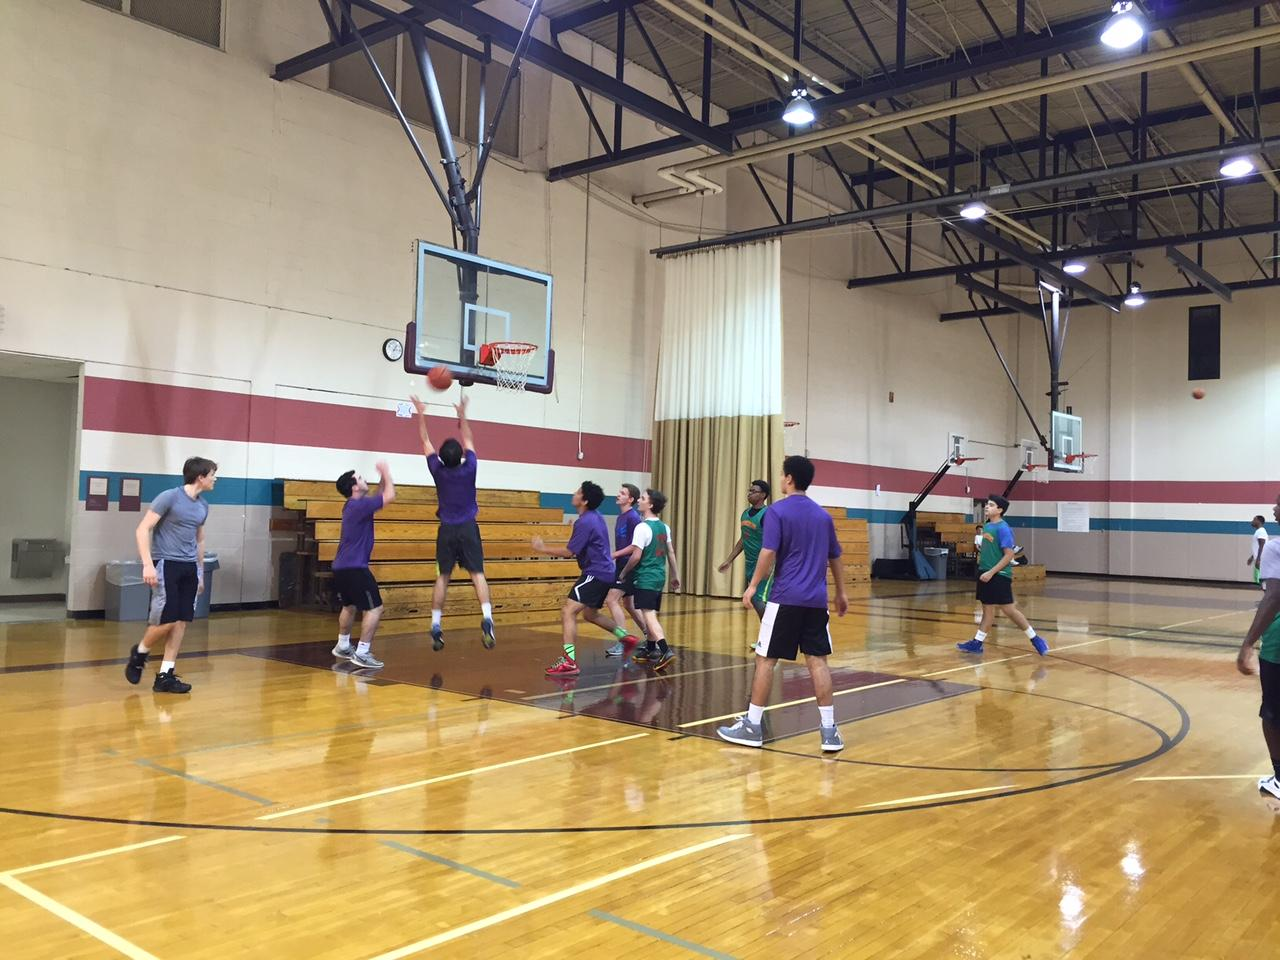 Members of Memphis Sonics and FC Lancaster face off in recreational basketball game.